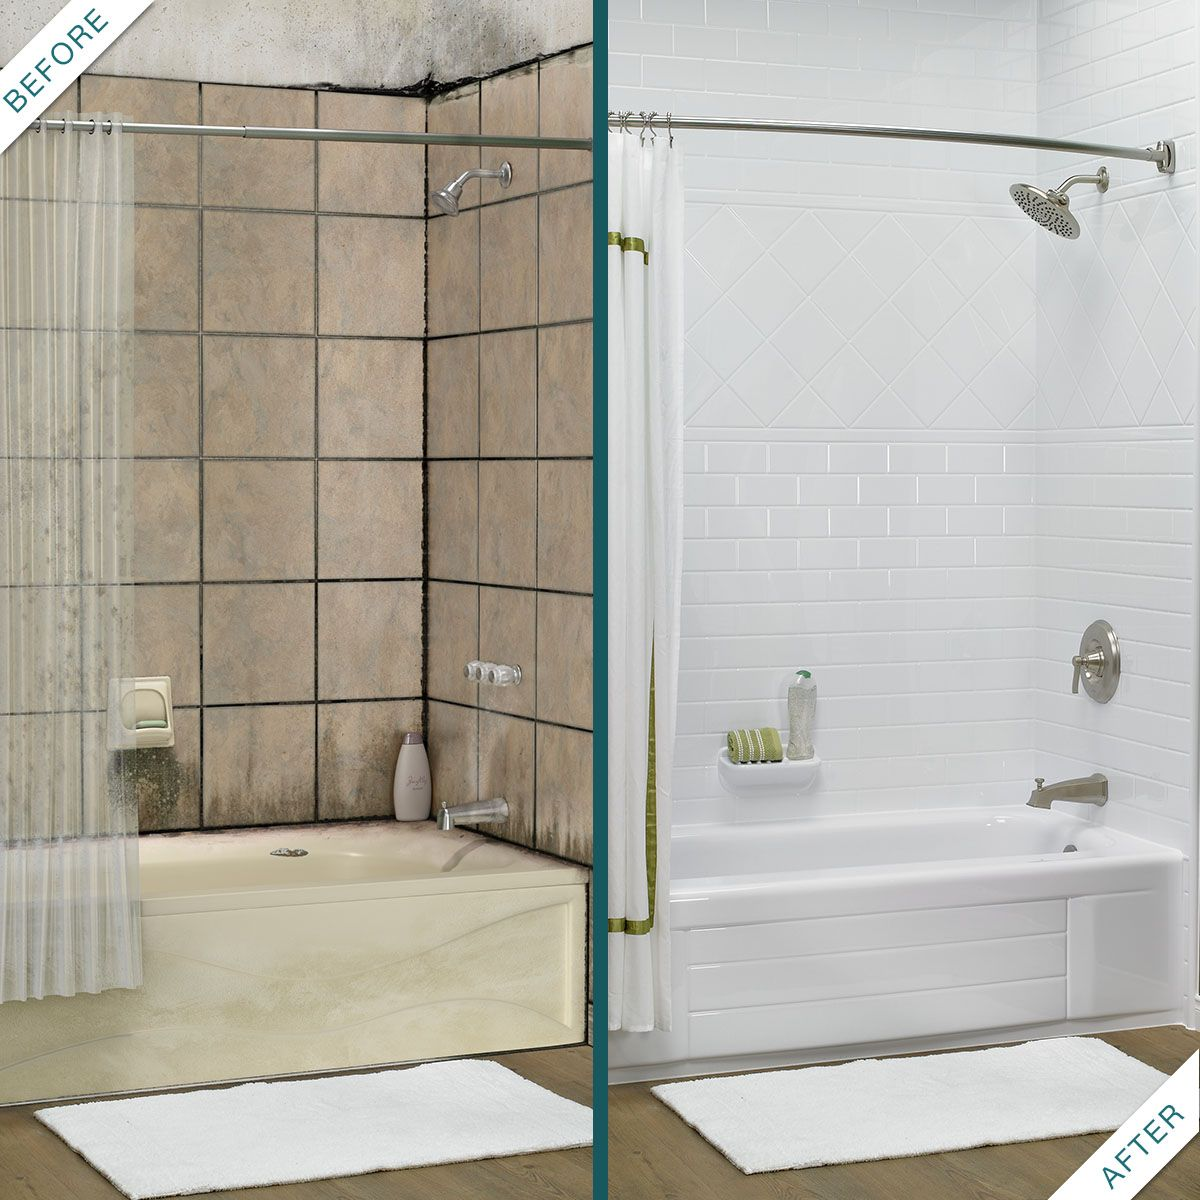 Bathroom Remodeling, Acrylic Bathtubs and Showers  Bath fitter